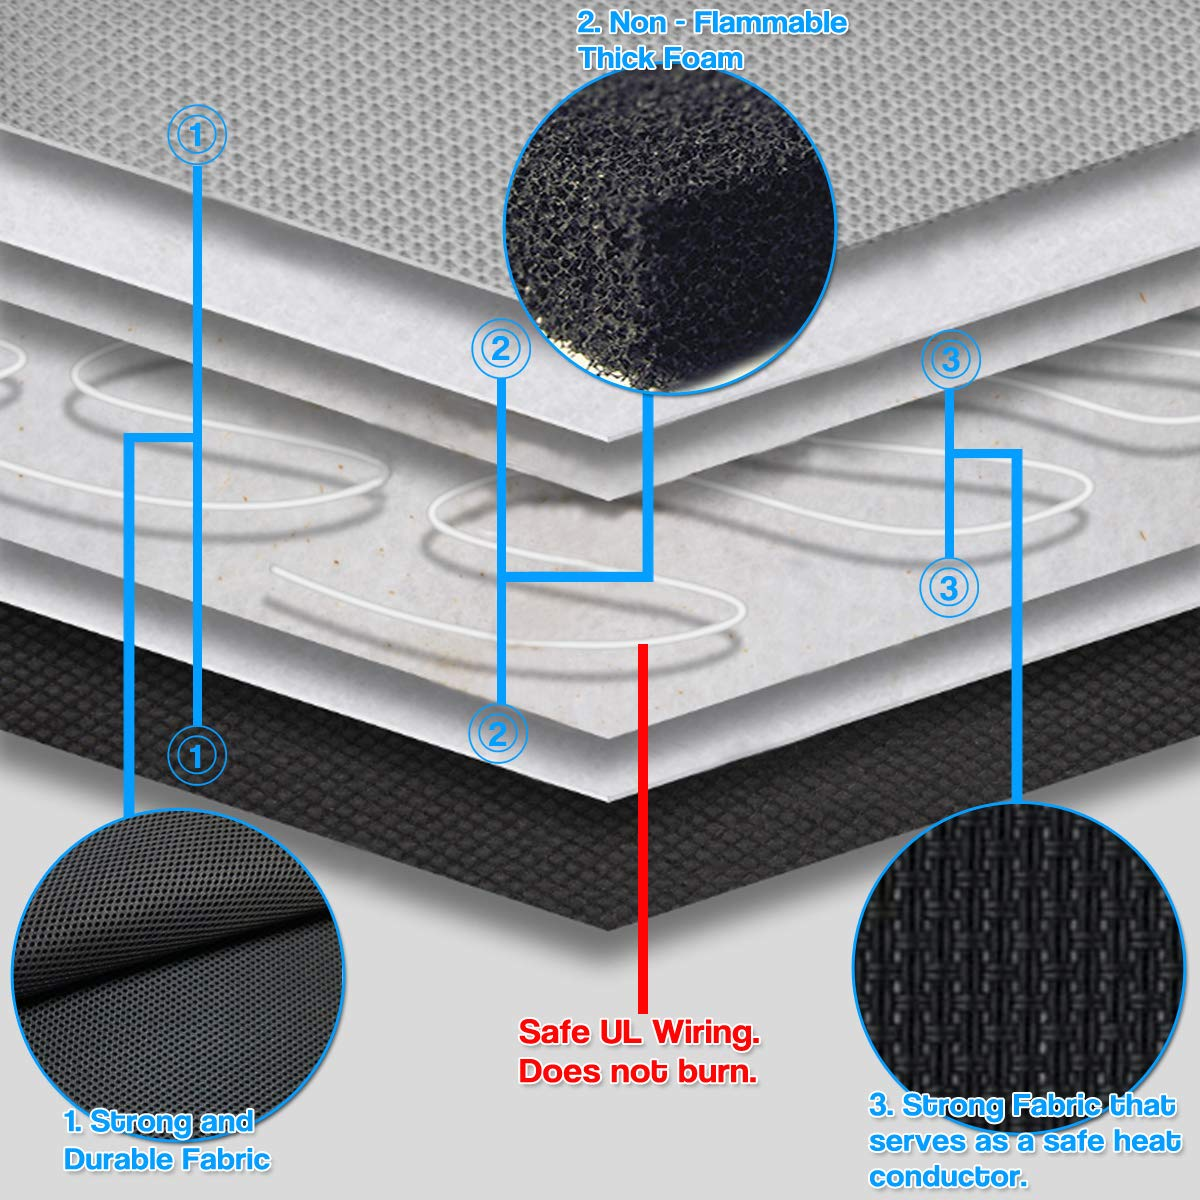 Safer Nonflammable UL Wiring SE44-2 2 Pack Quality Comfortable Heating Warmer Pad Secured Straps Cold Weather Winter Driving Upgraded Version 2019 Zento Deals 12V Heated Car Seat Cushion